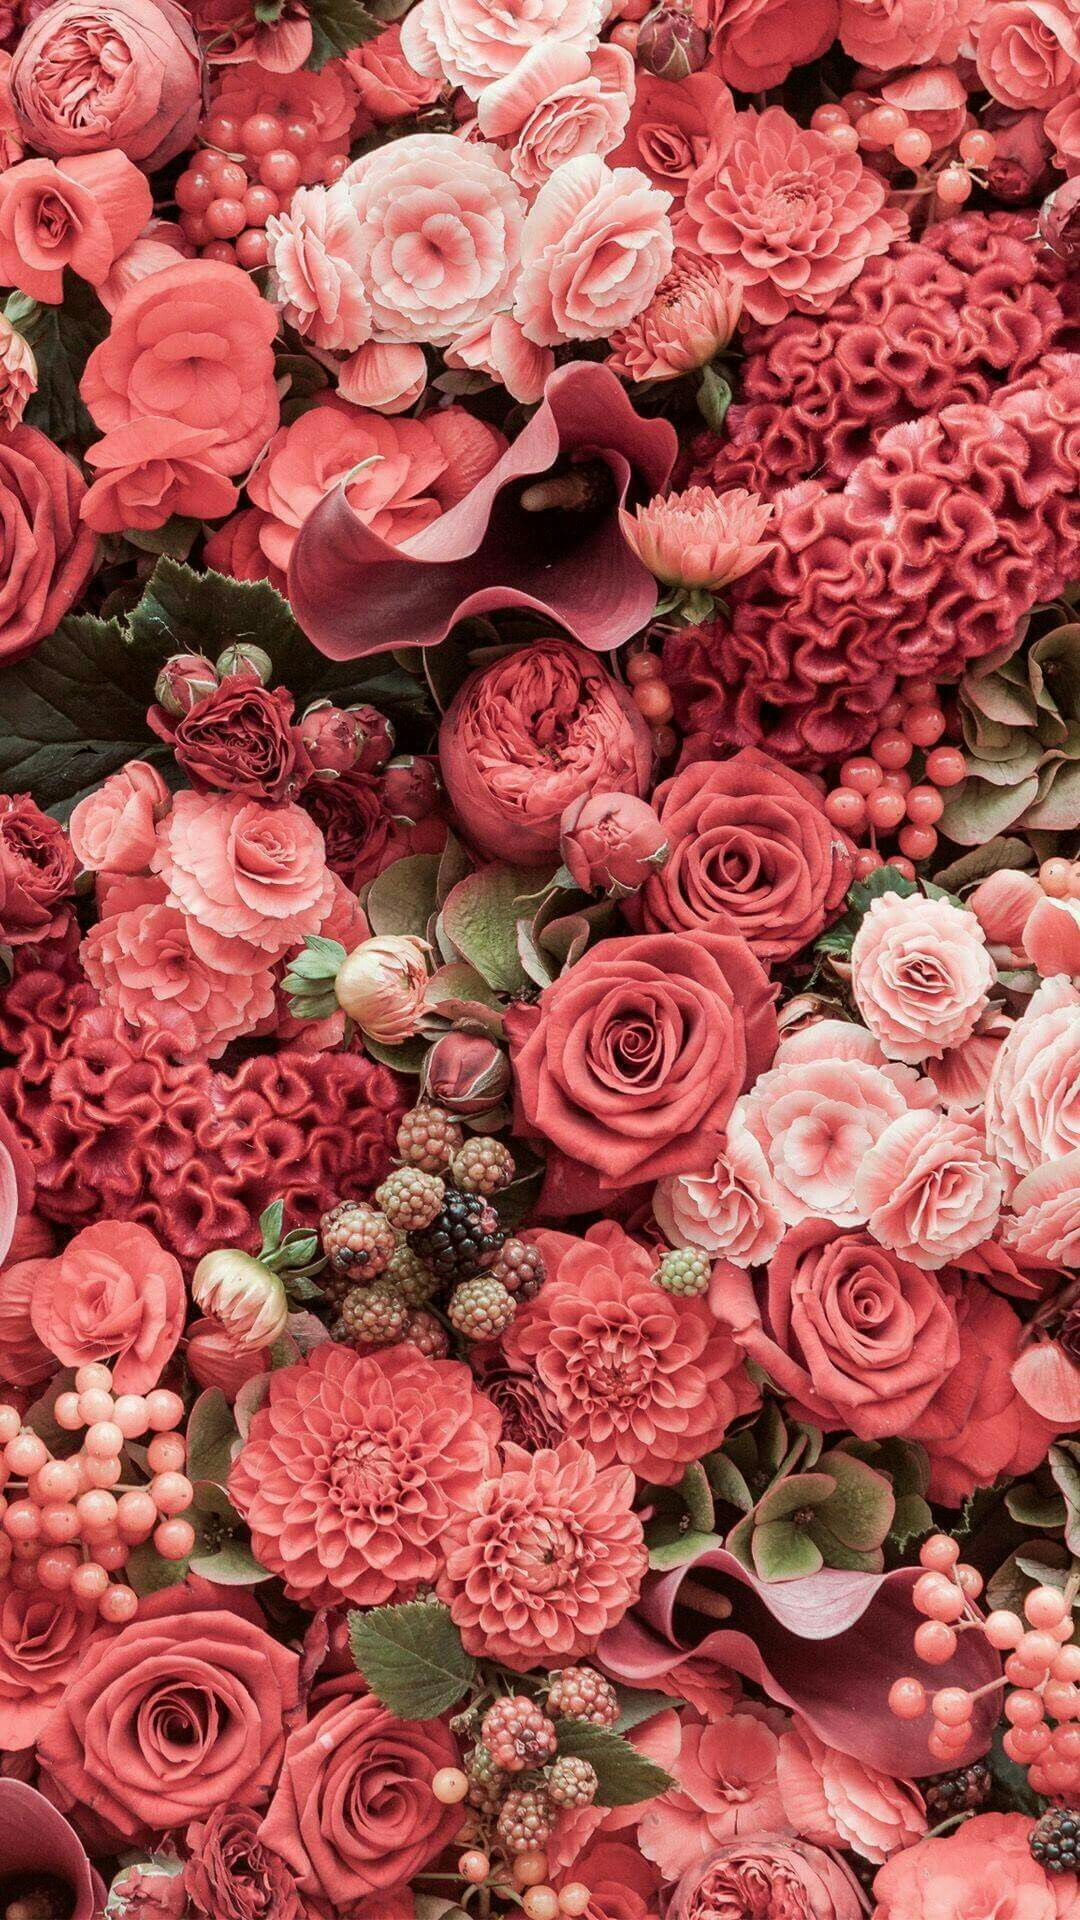 Pin by victoria m on cool stuff pinterest wallpaper flowers and rose wallpaper and flowers image izmirmasajfo Image collections